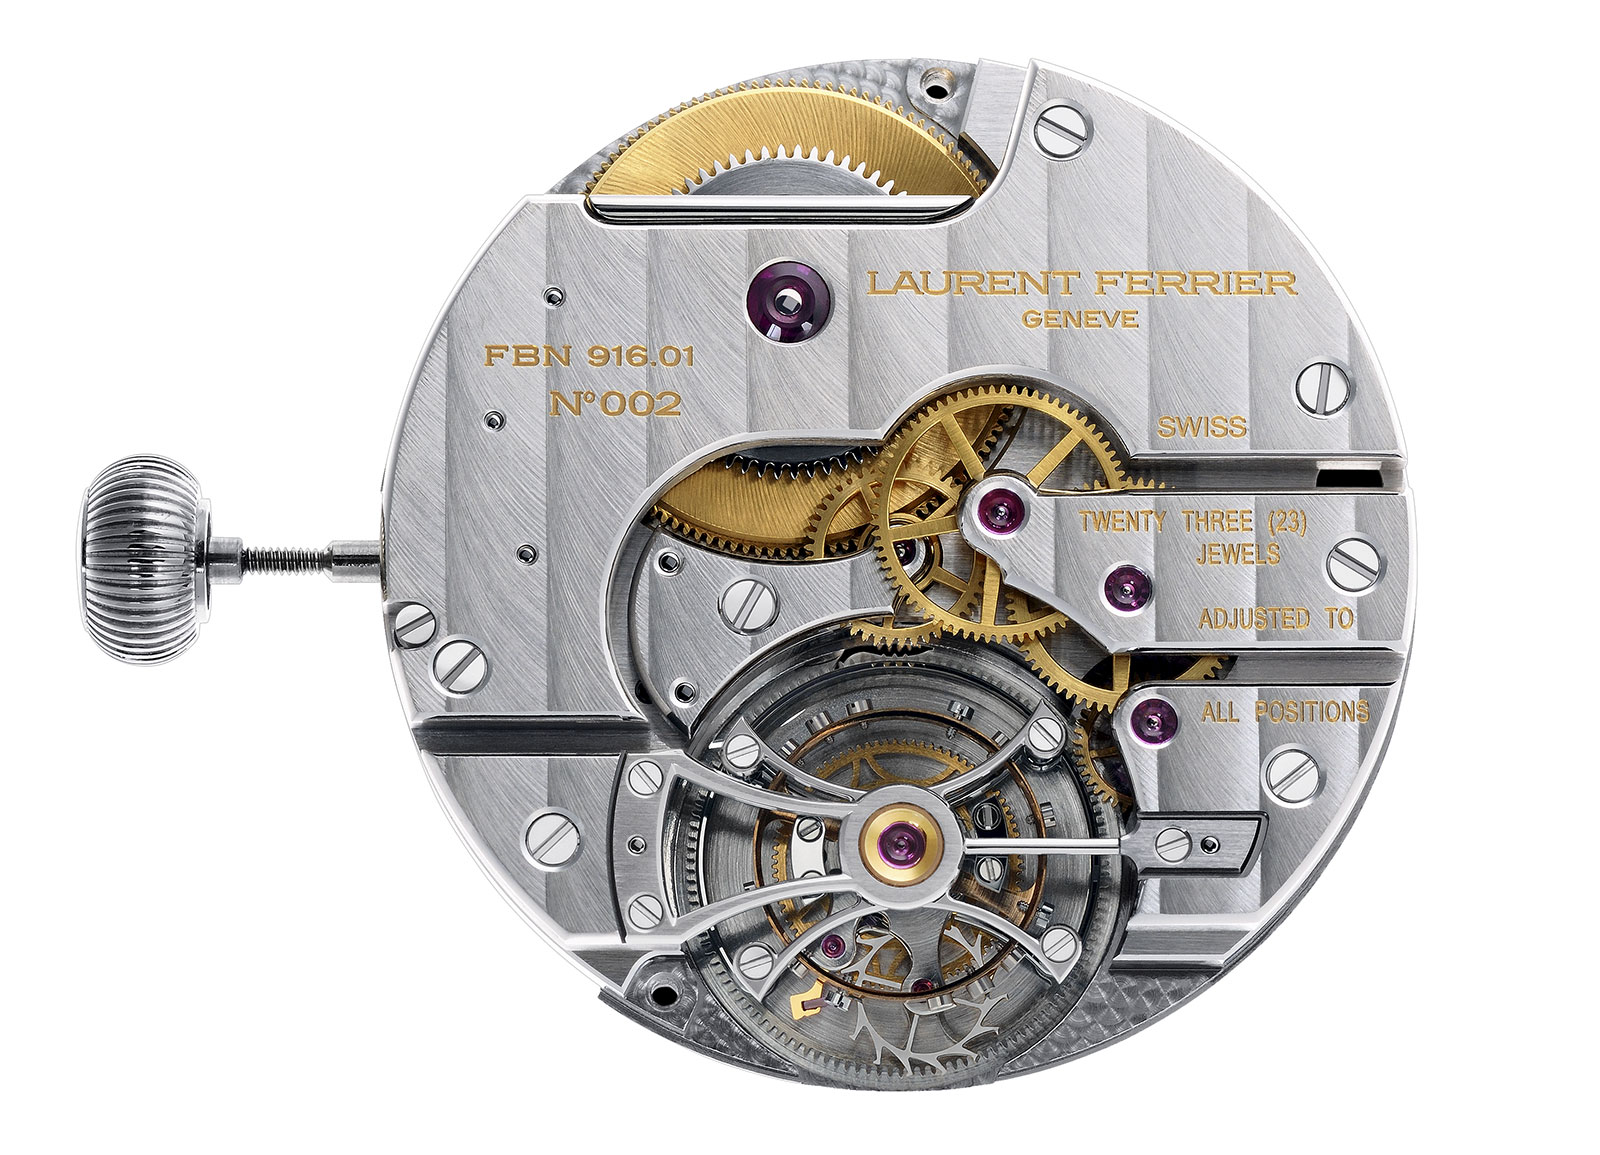 Laurent Ferrier tourbillon movement FBN916.01